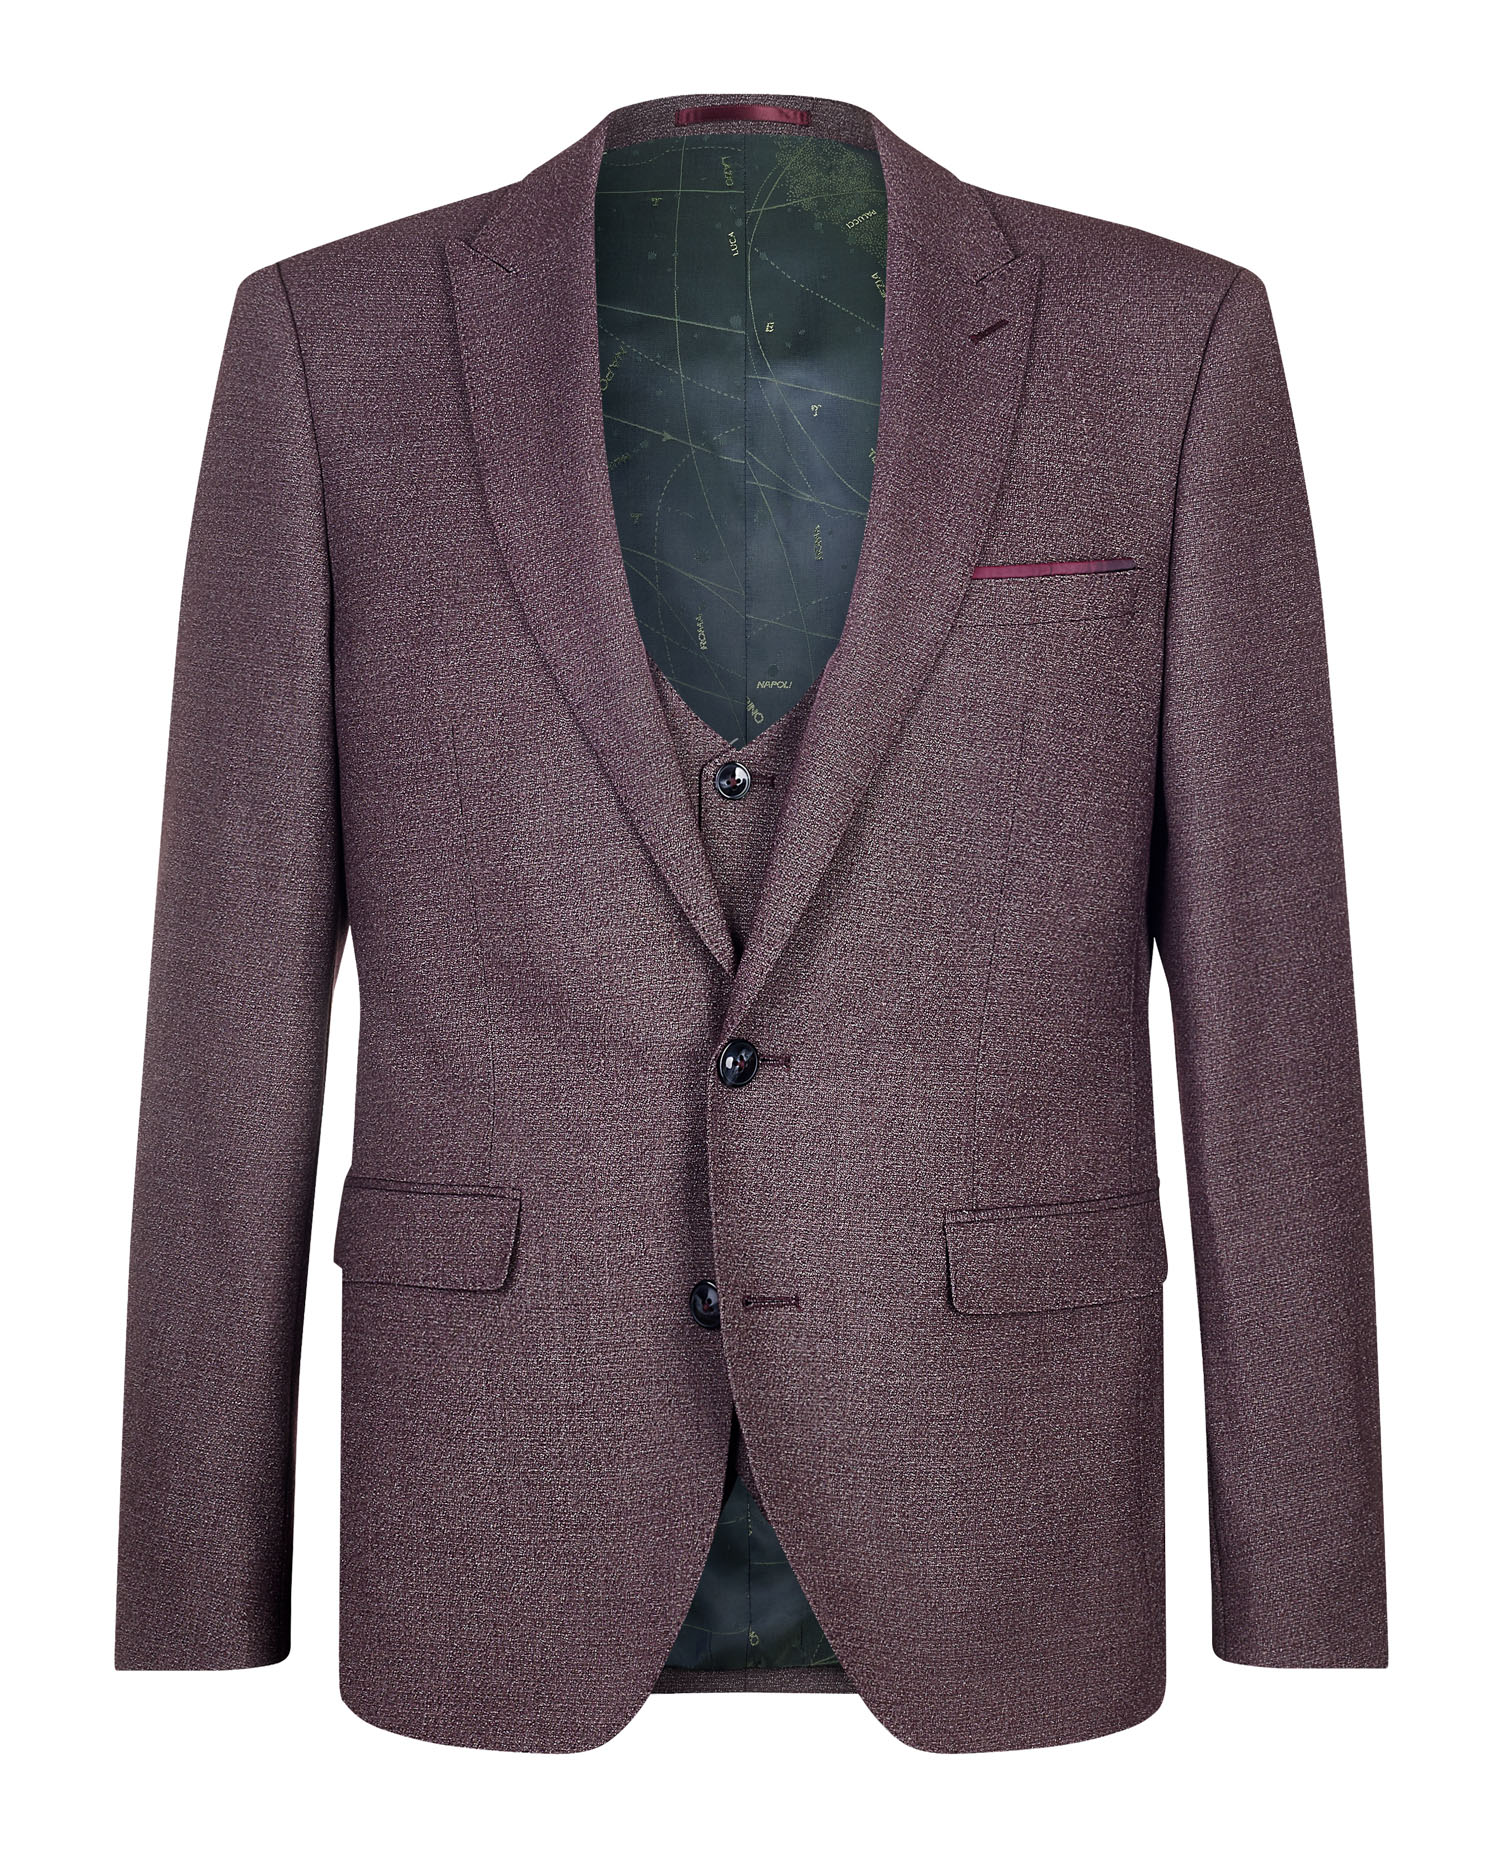 X-Slim Fit Wool-Blend Stretch 3 Piece Suit